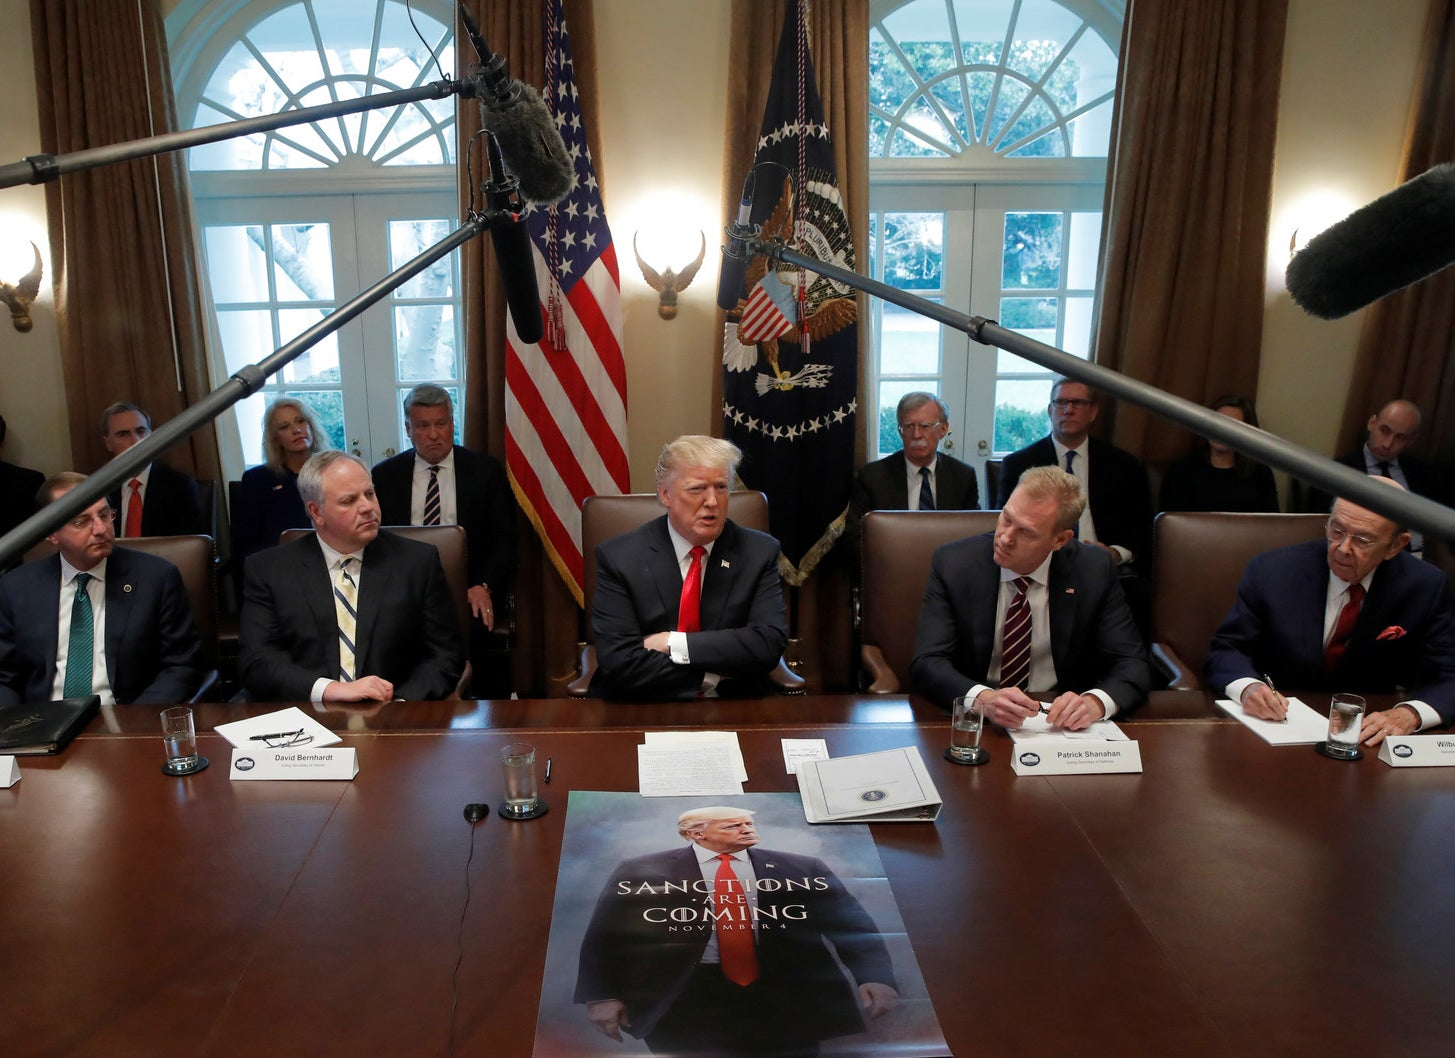 President Trump attends a Cabinet meeting with a poster of himself in the style of the television show Game of Thrones on Day 12 of the partial US government shutdown at the White House on Jan. 2.